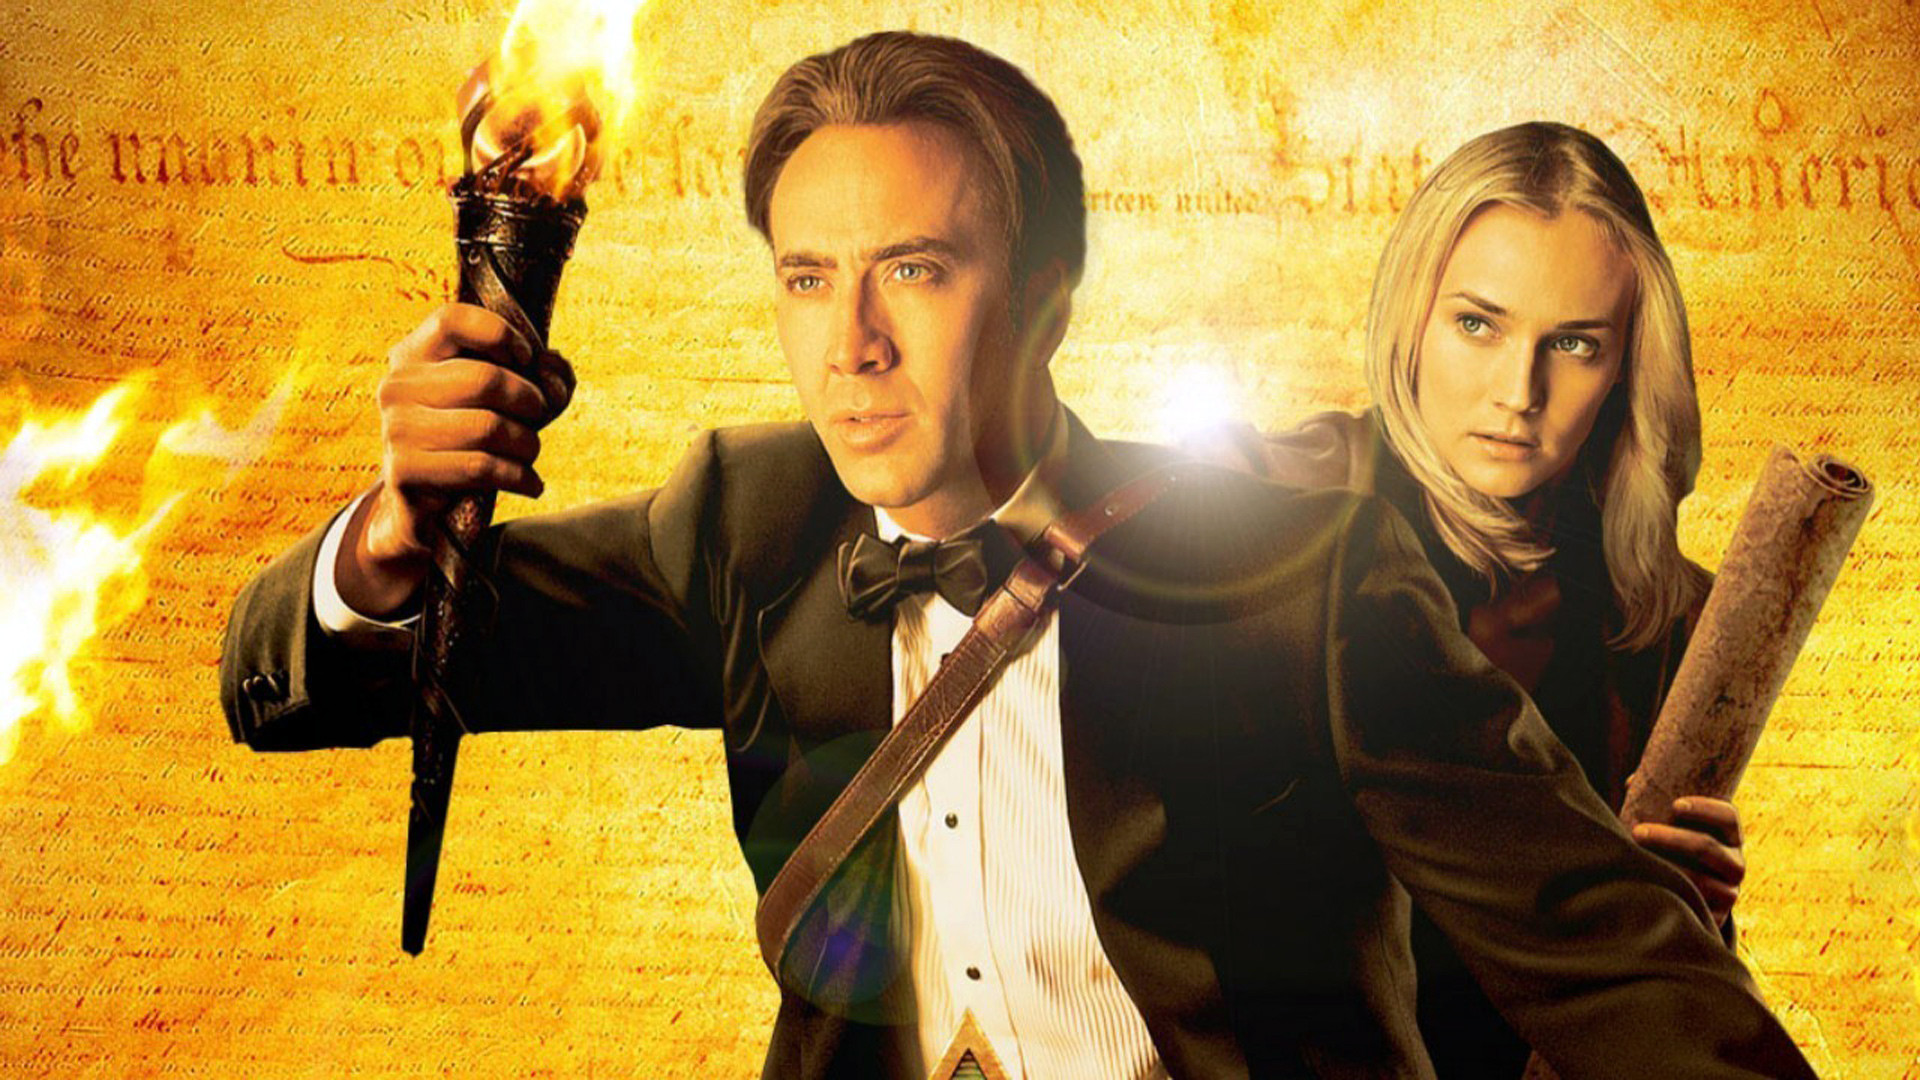 「National Treasure movie」の画像検索結果